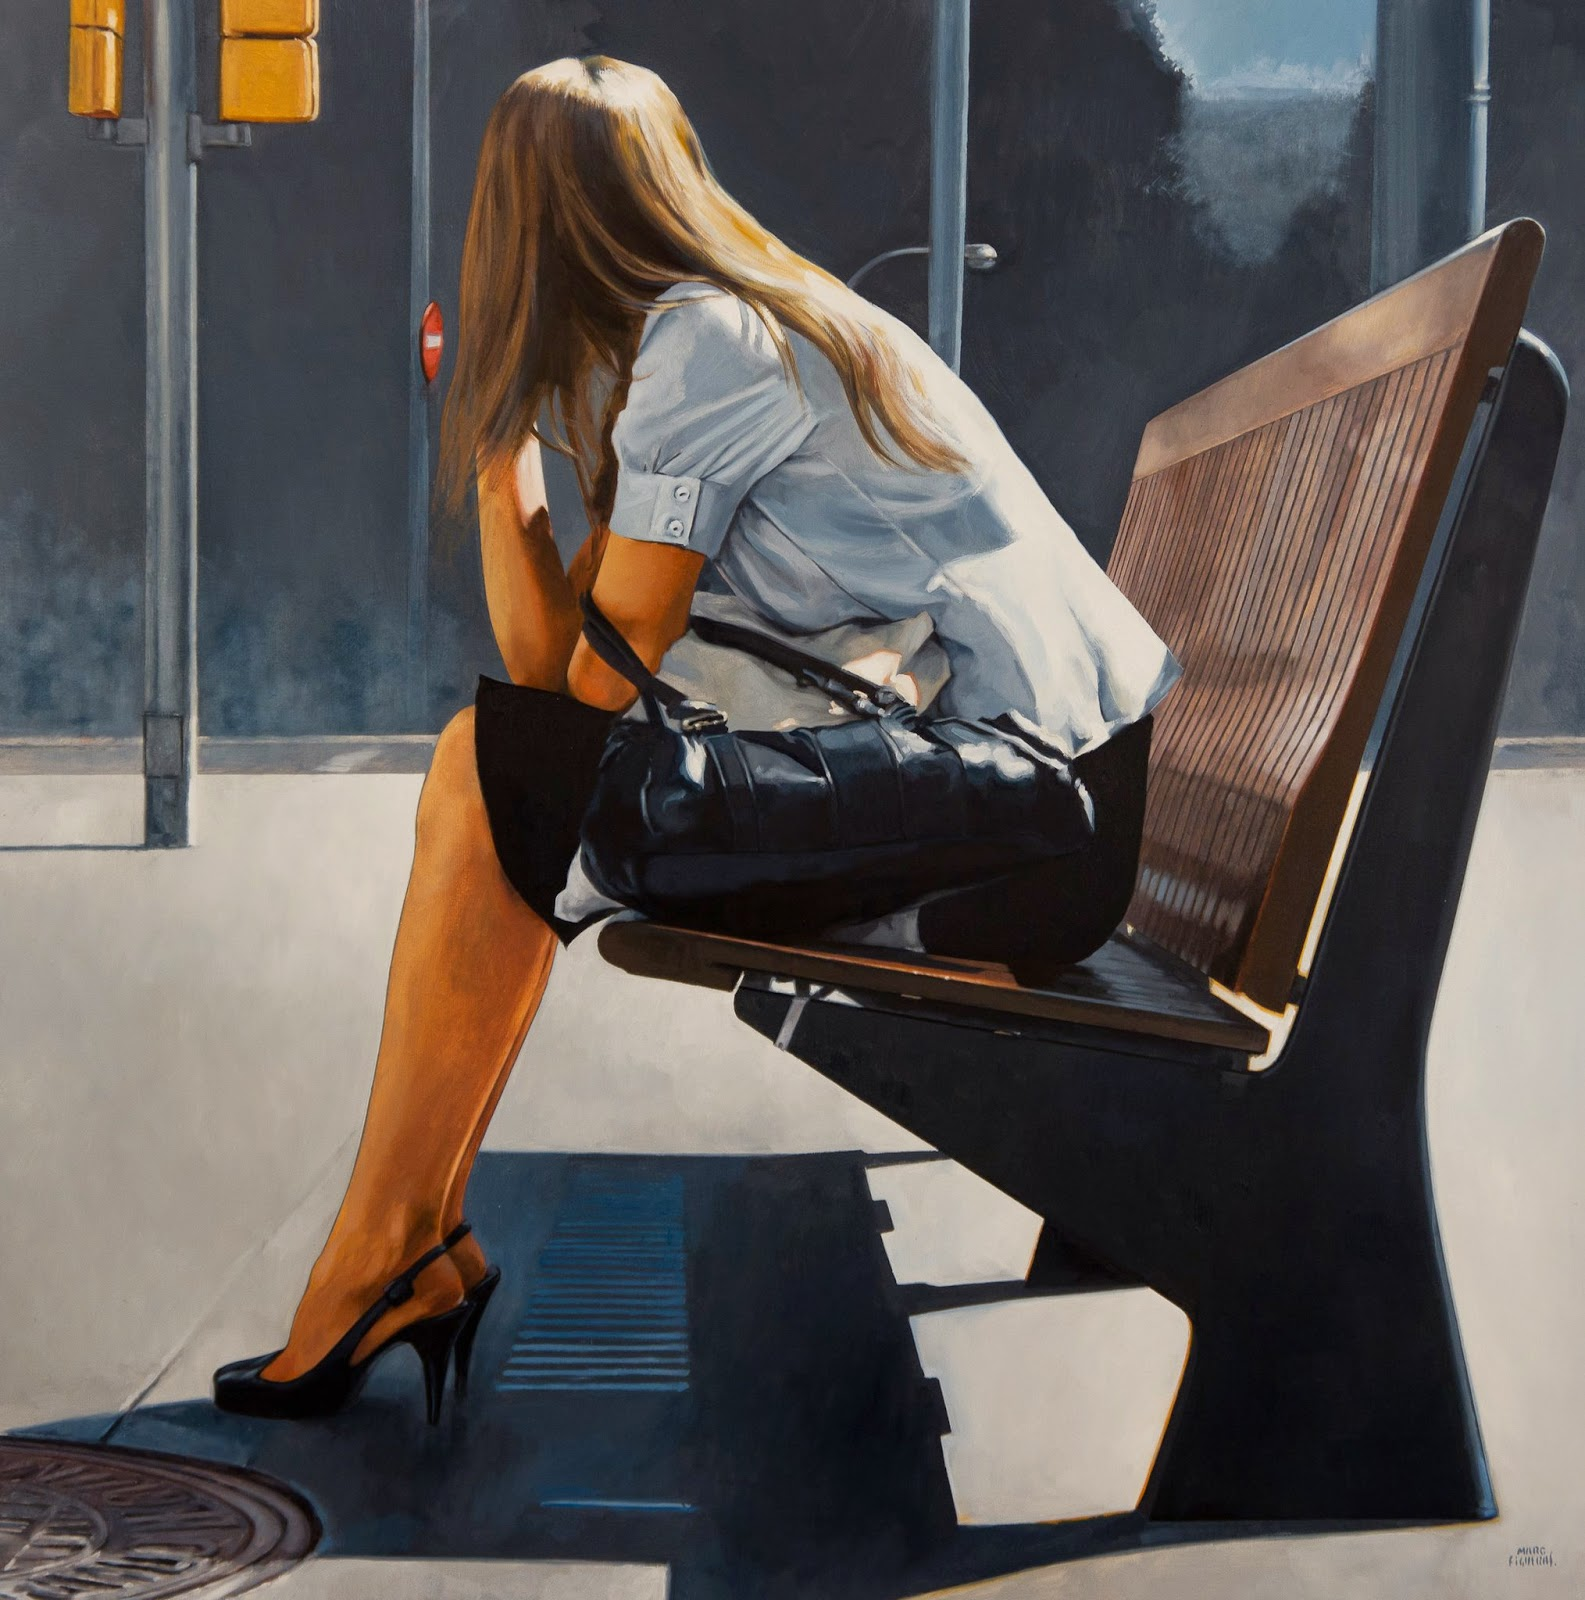 Hyper Realistic Girls Figure Painting By Marc Figueras (17)